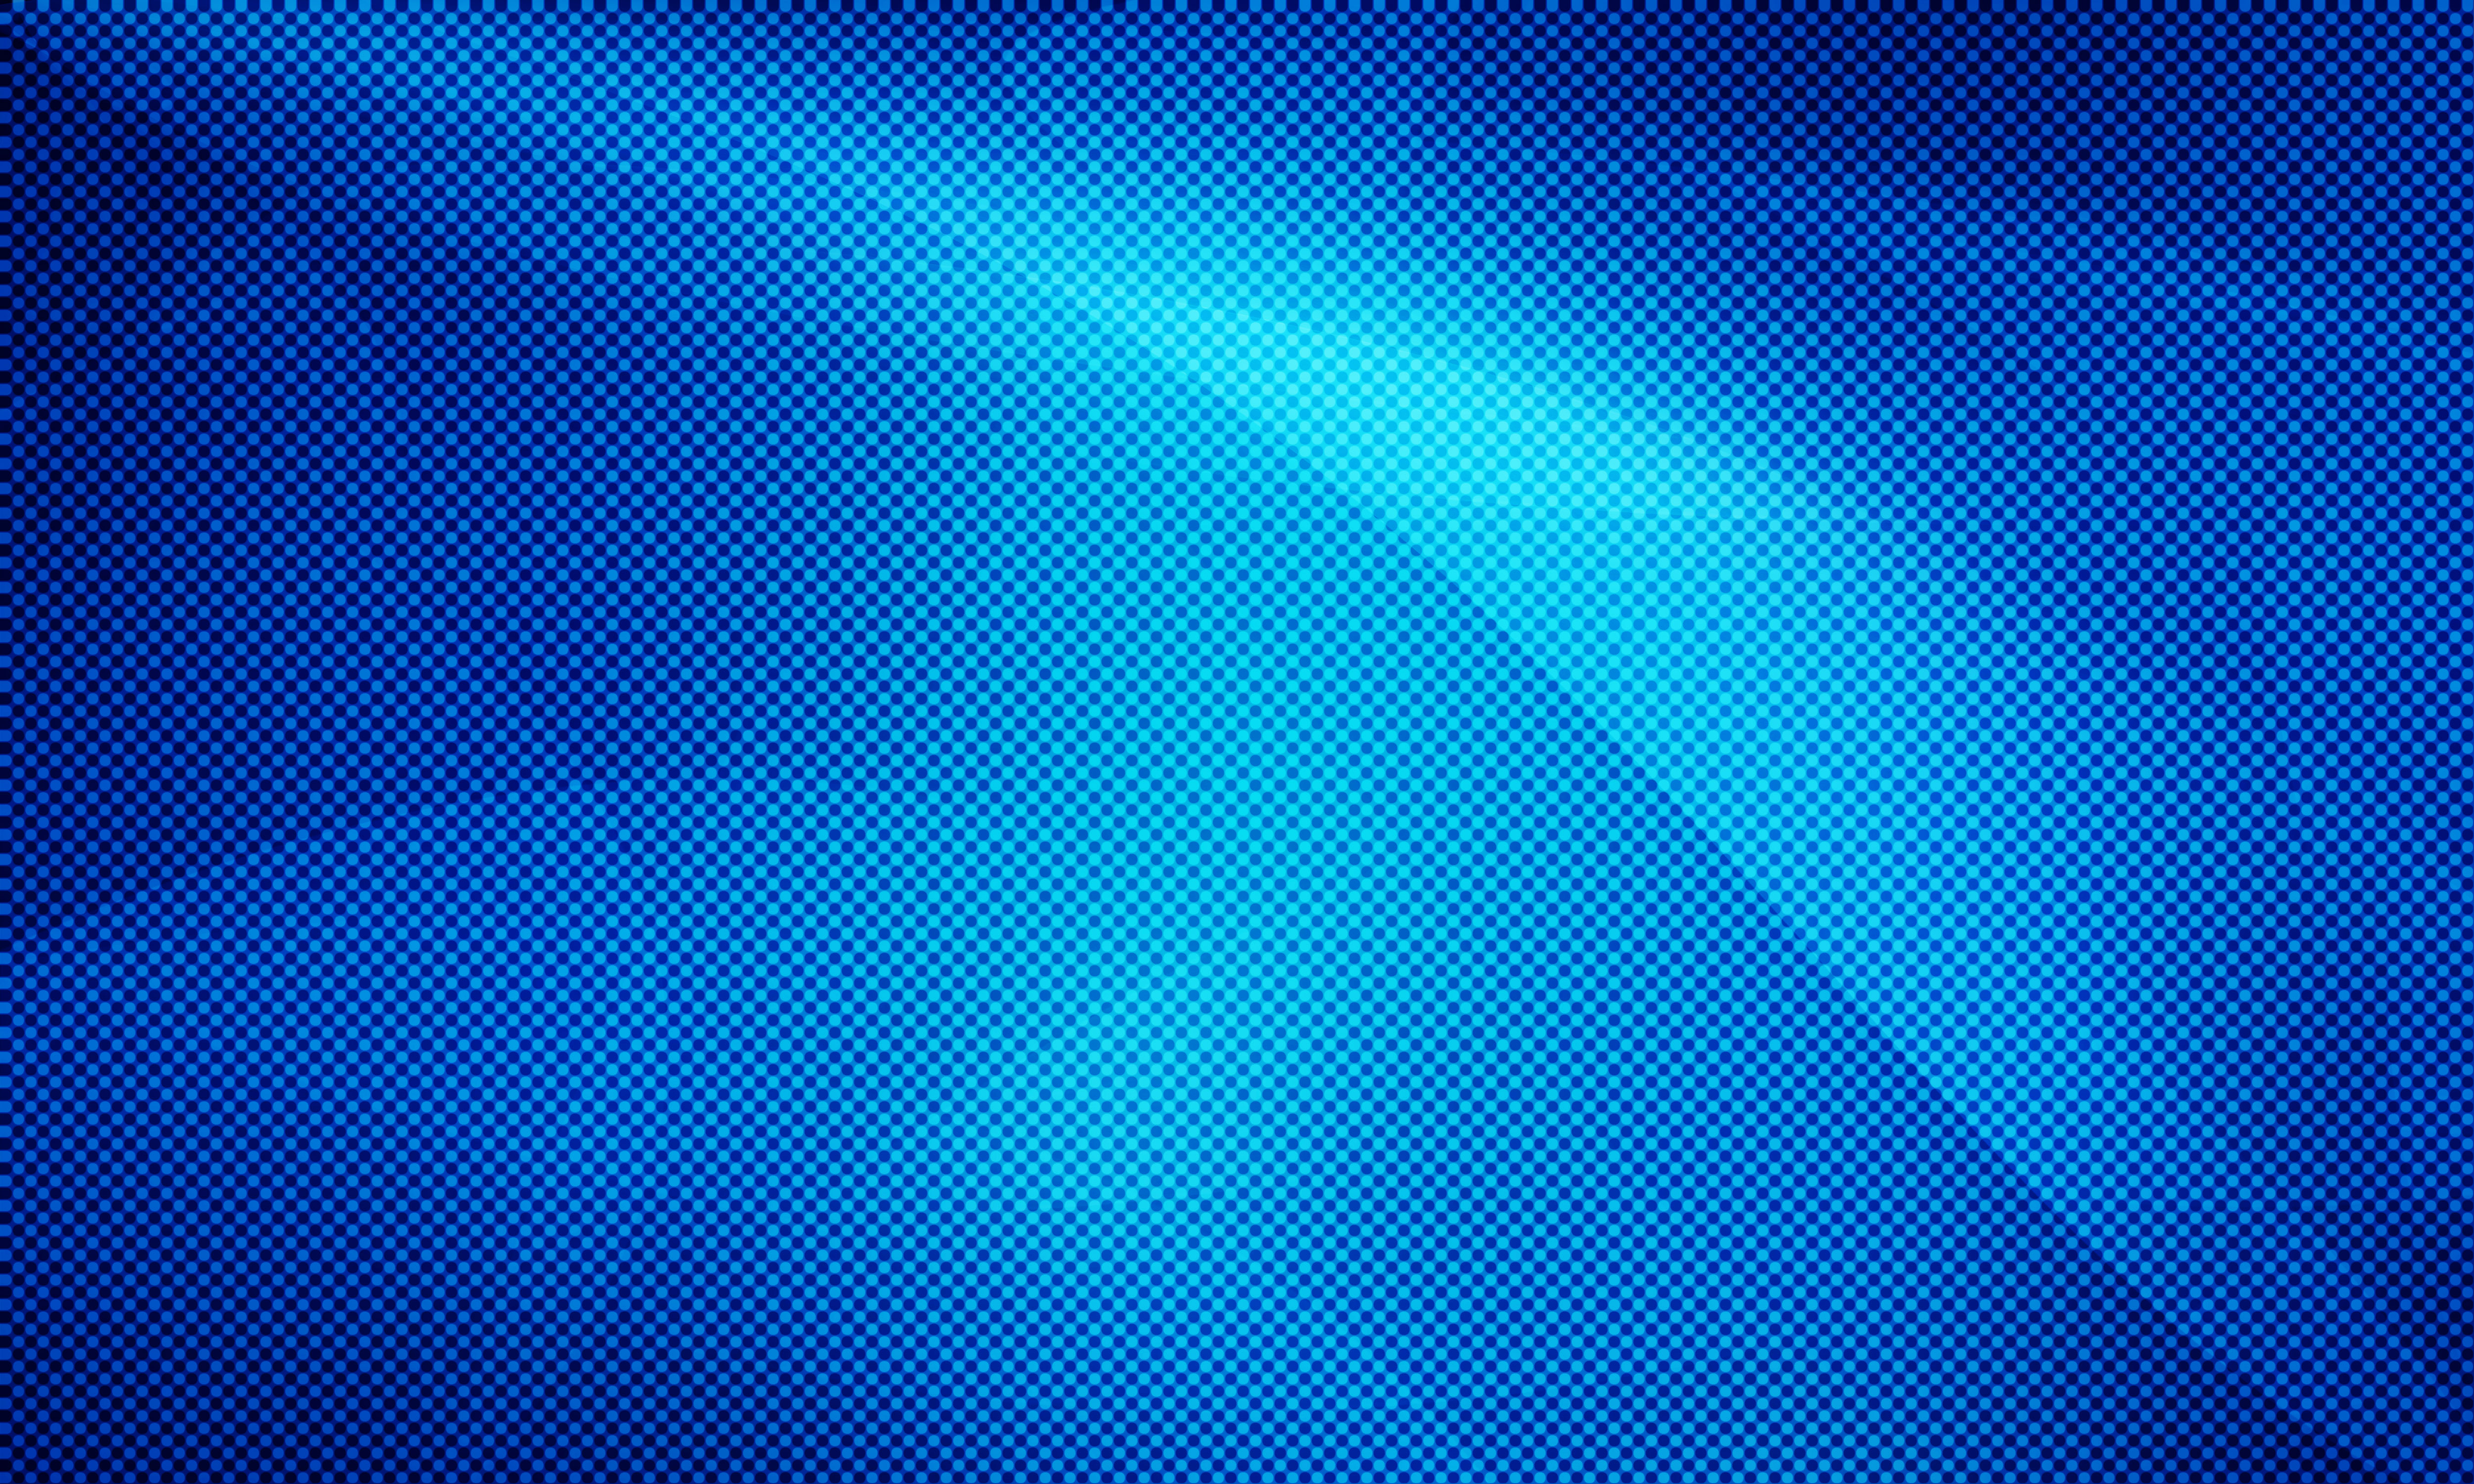 Blue Abstract Background Powerpoint Backgrounds For Free